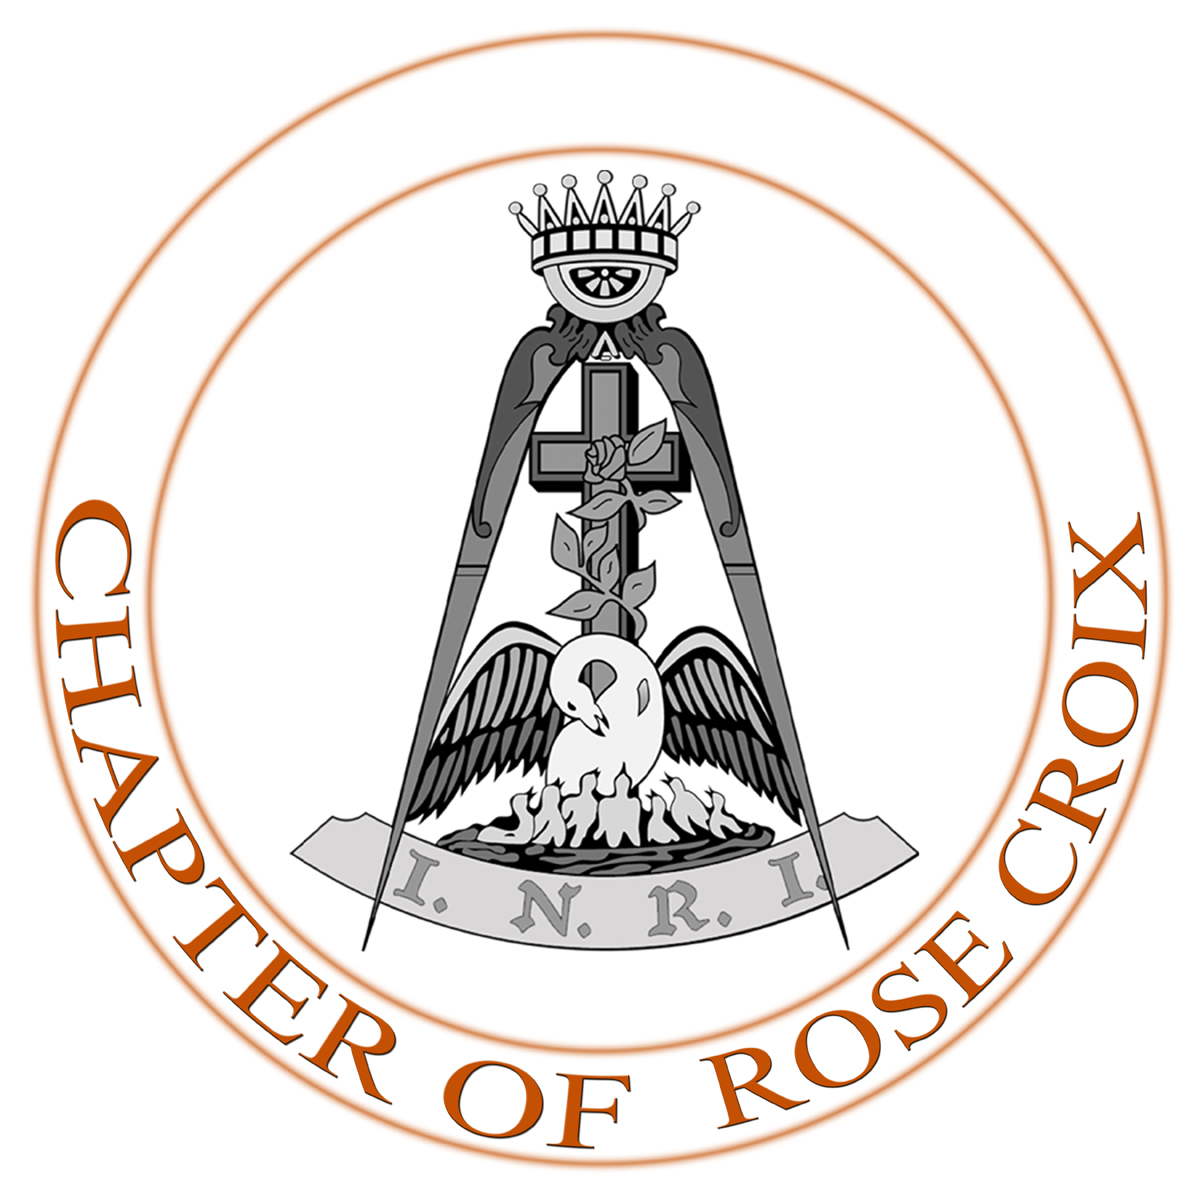 The midnight freemasons the camp part two the nonagon and tents chapter rose croix 15 18 buycottarizona Gallery